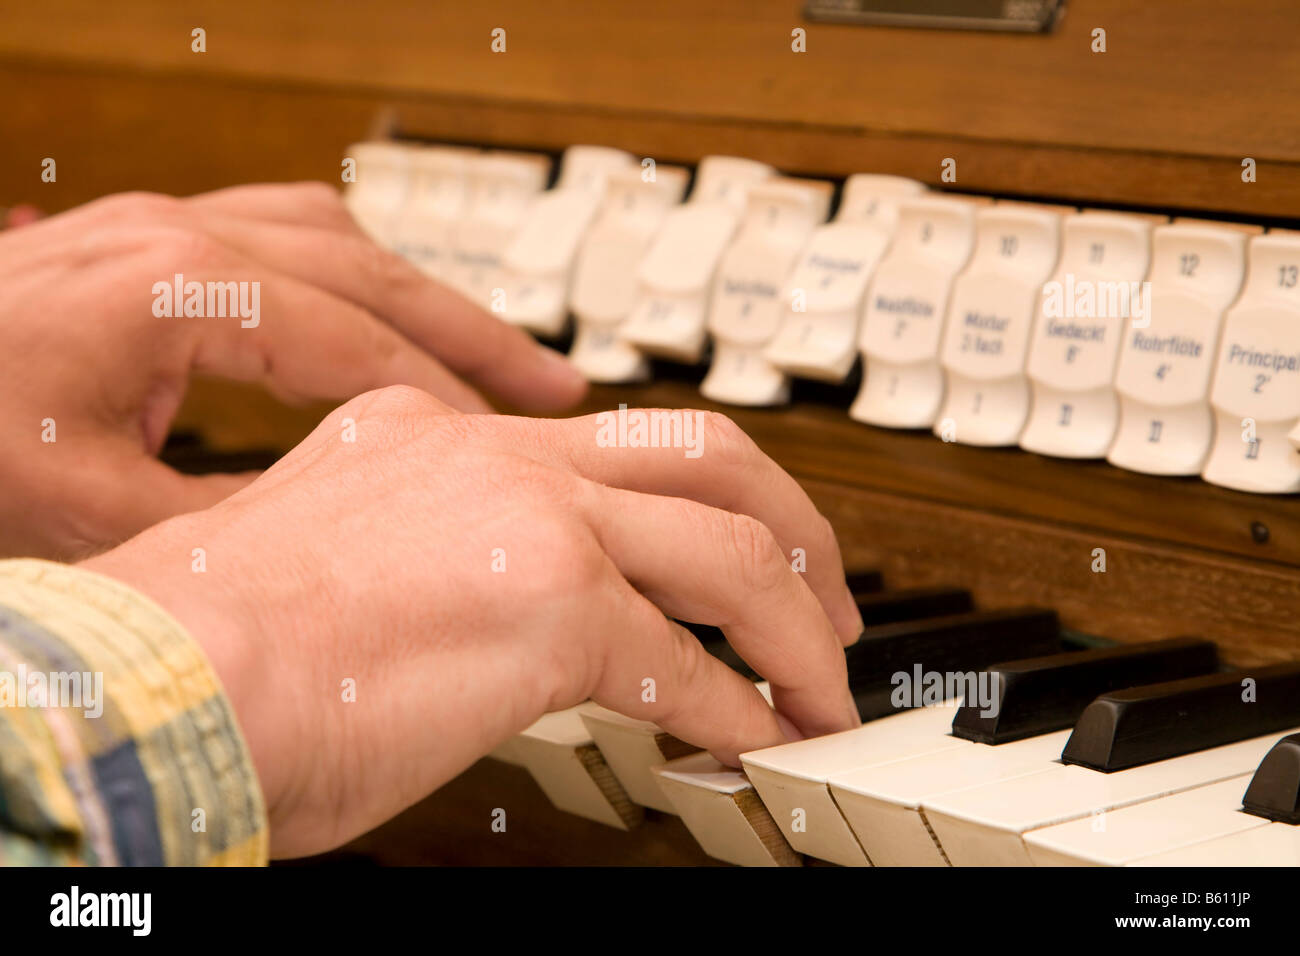 Hands operating the stops and keyboard, or manual, of the privately restored church organ at Orgelhof Goldelund, - Stock Image